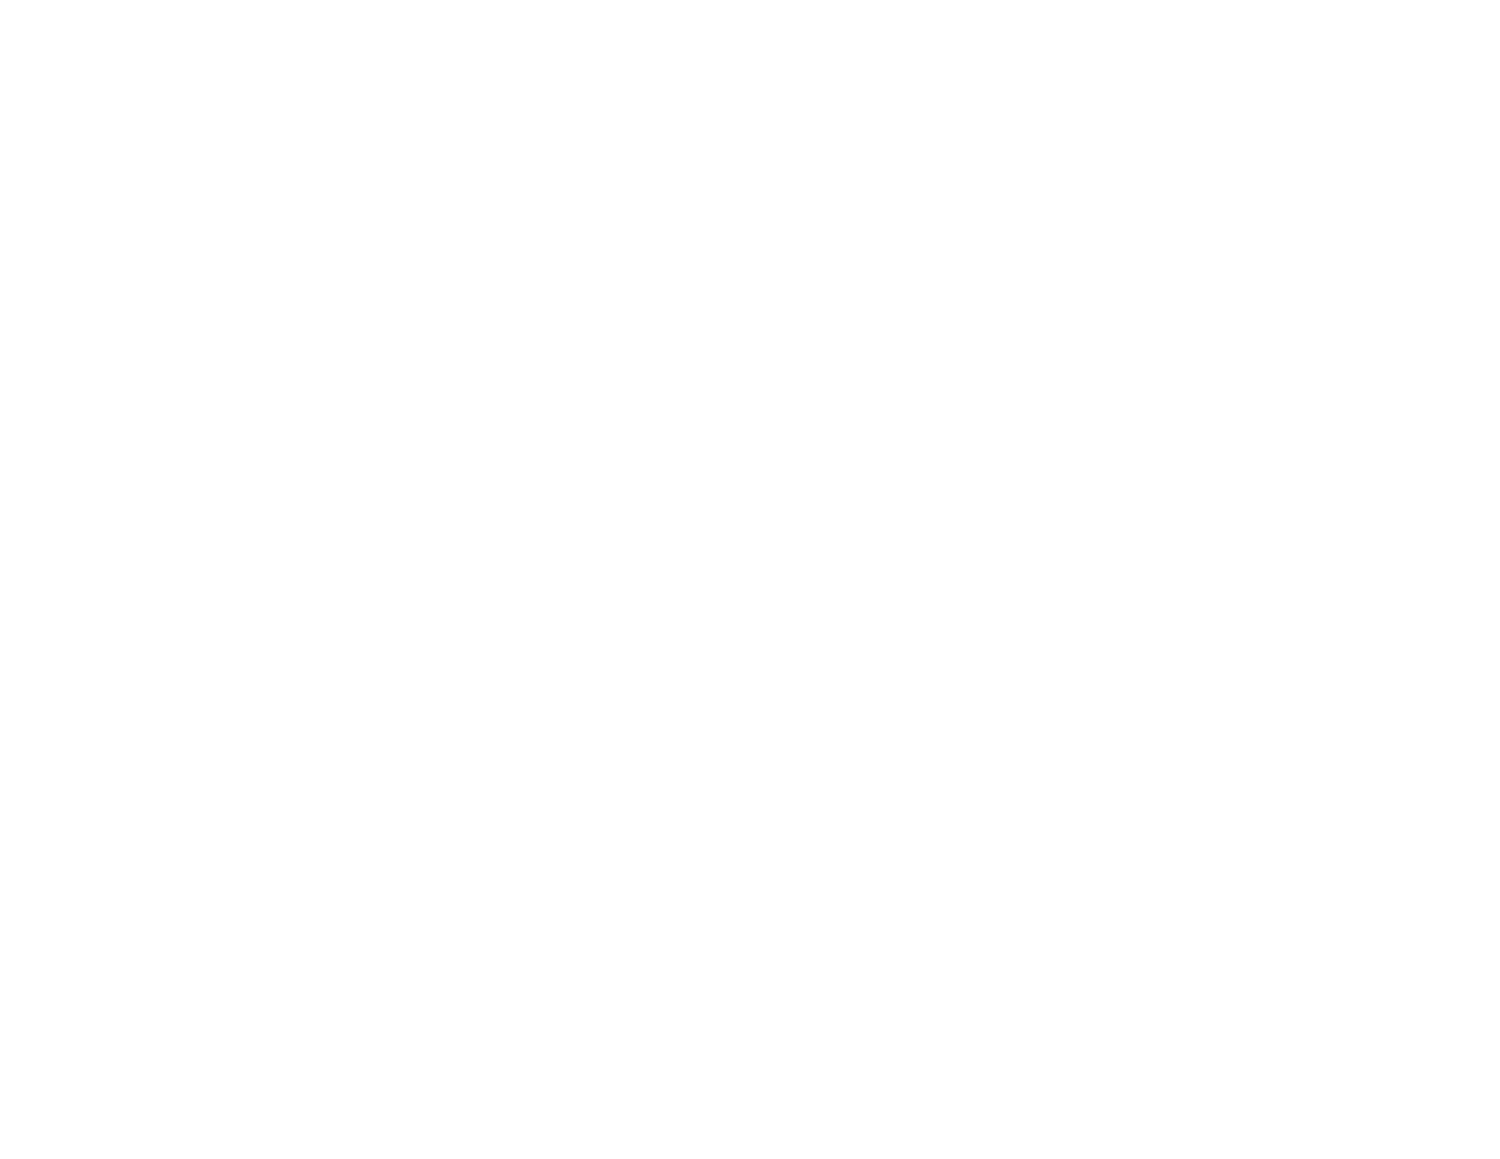 Rainbow Institute of Childcare Education